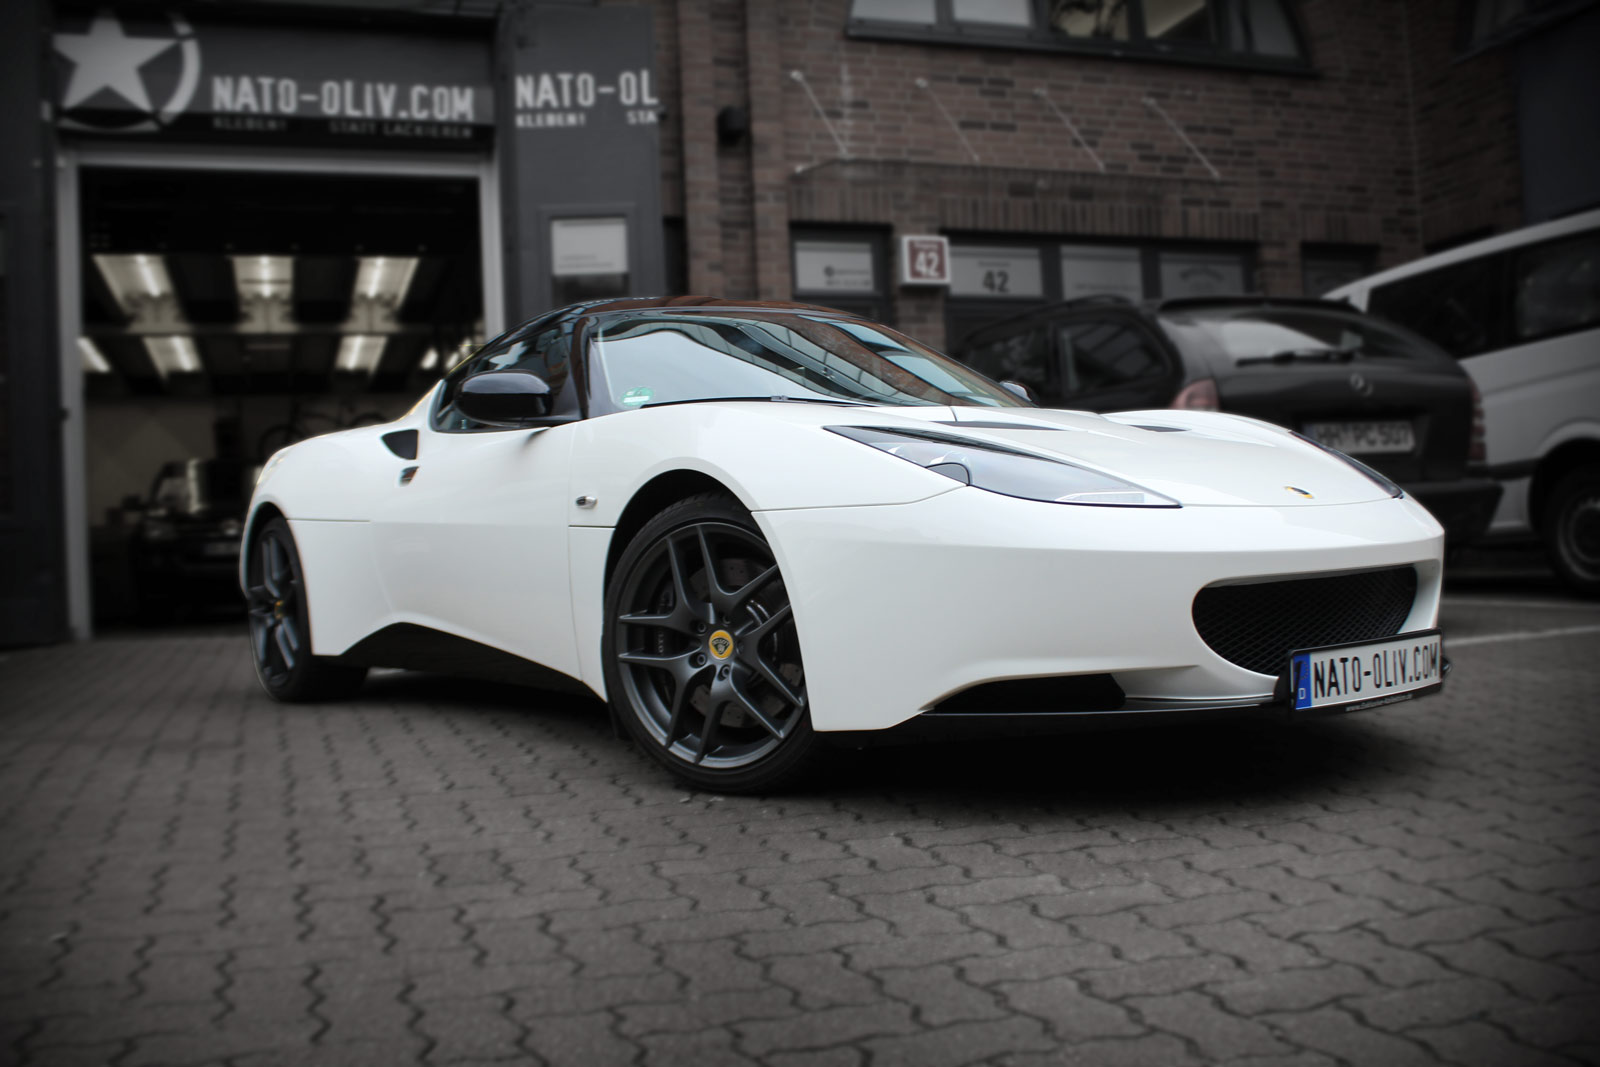 Lotus Evora S Folierung im Sports Racer Design.